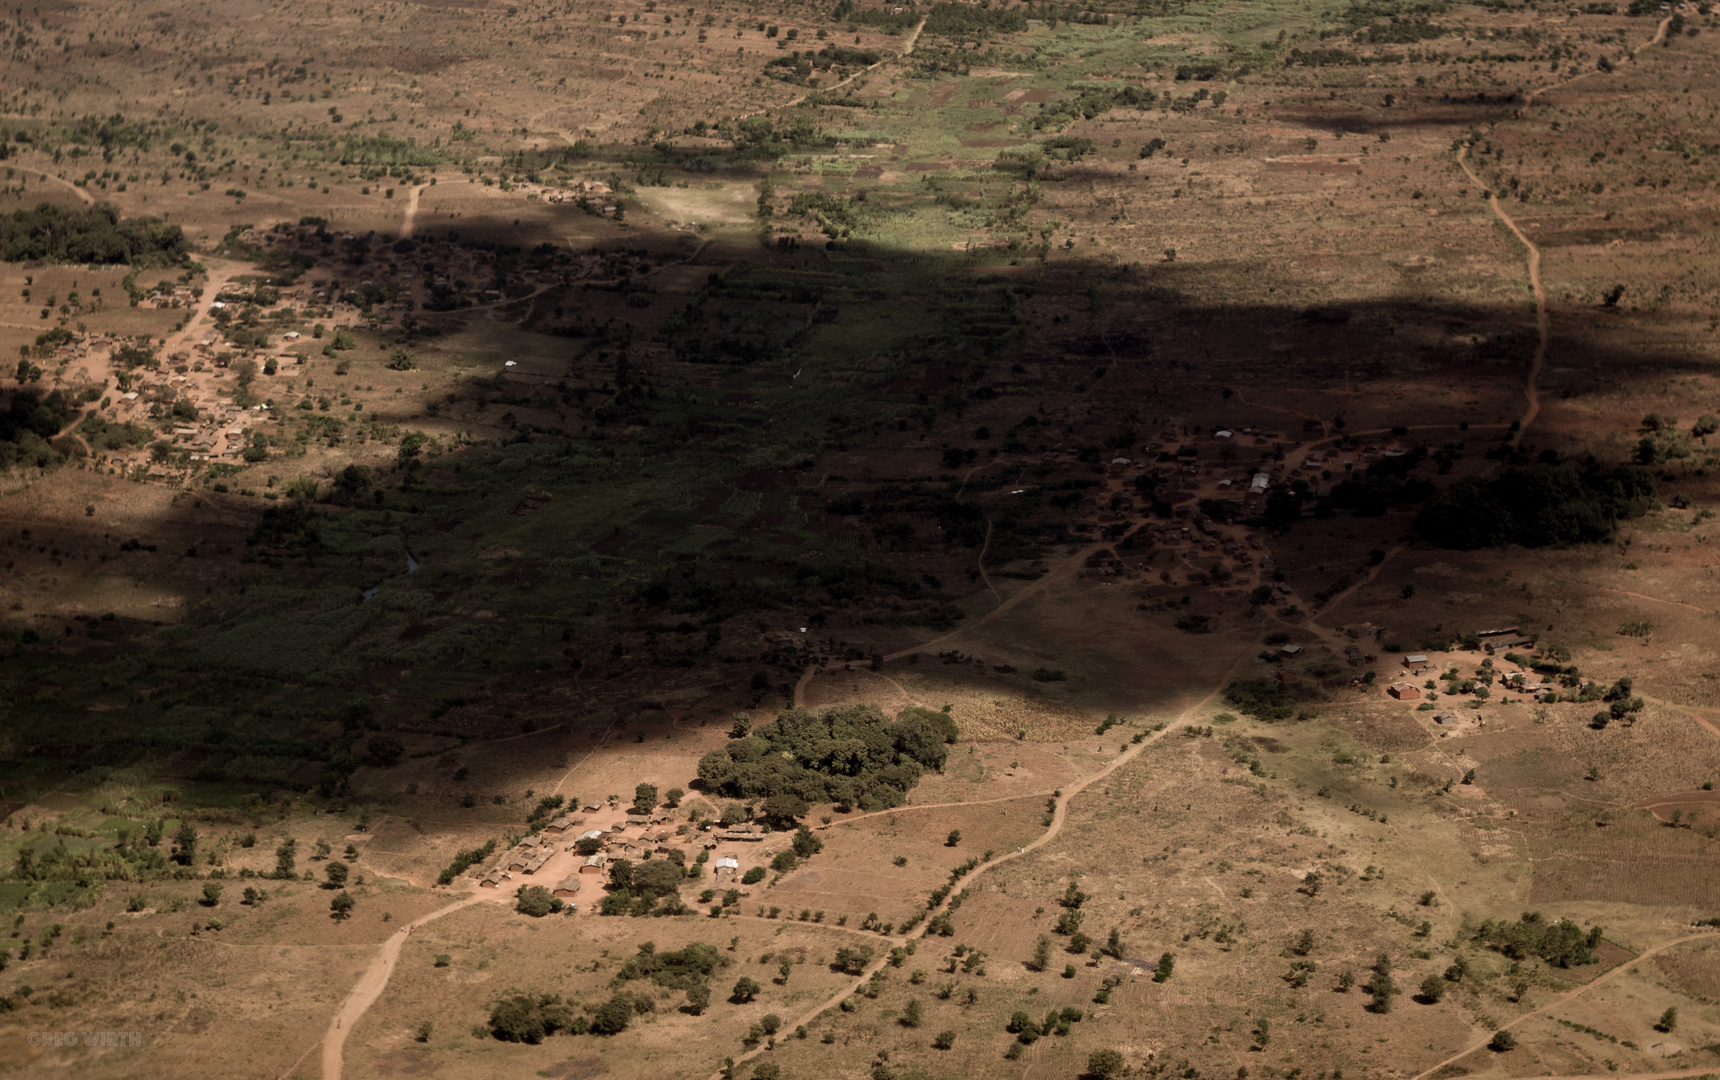 Shadow over Africa